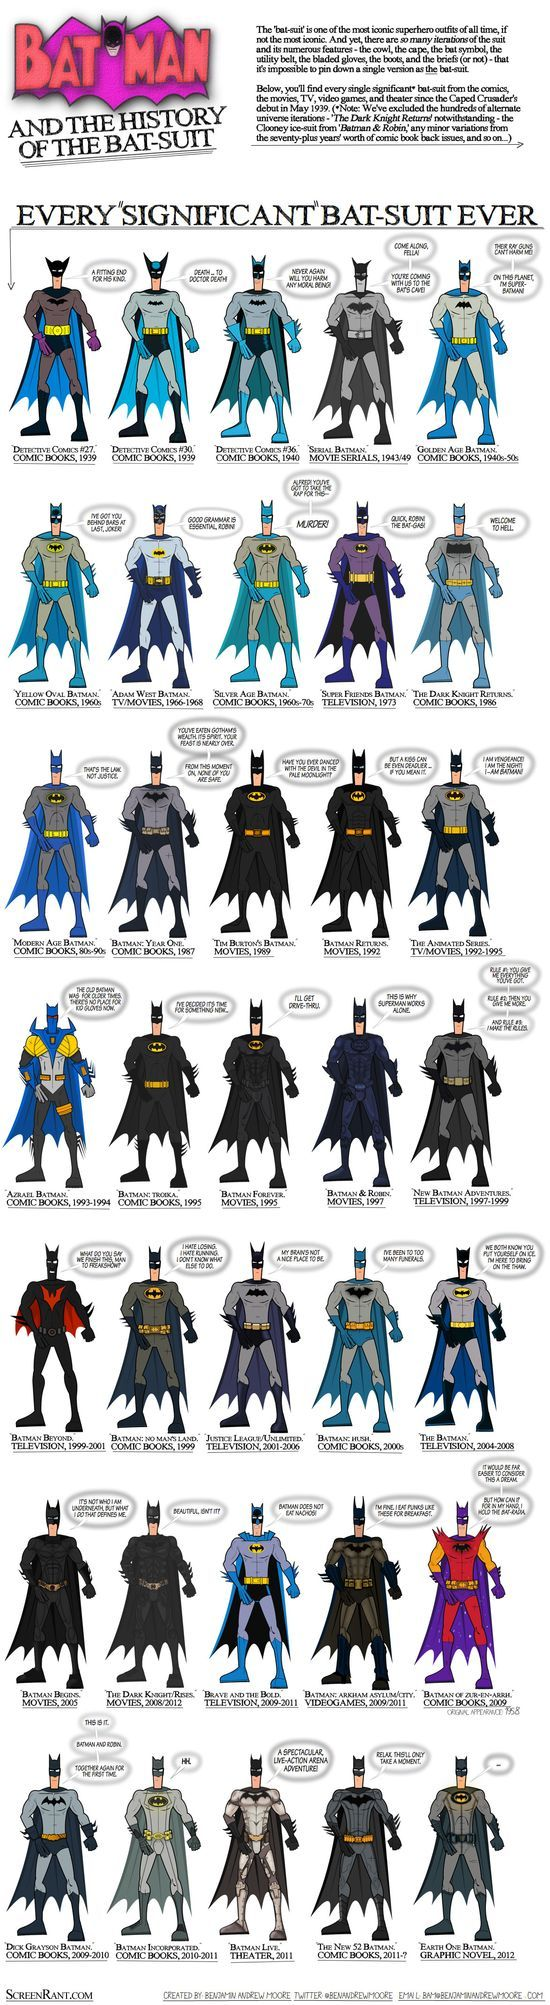 History of the Bat-Costume. Well done and I love the signature quotes for each | http://exploringuniversecollections.blogspot.com